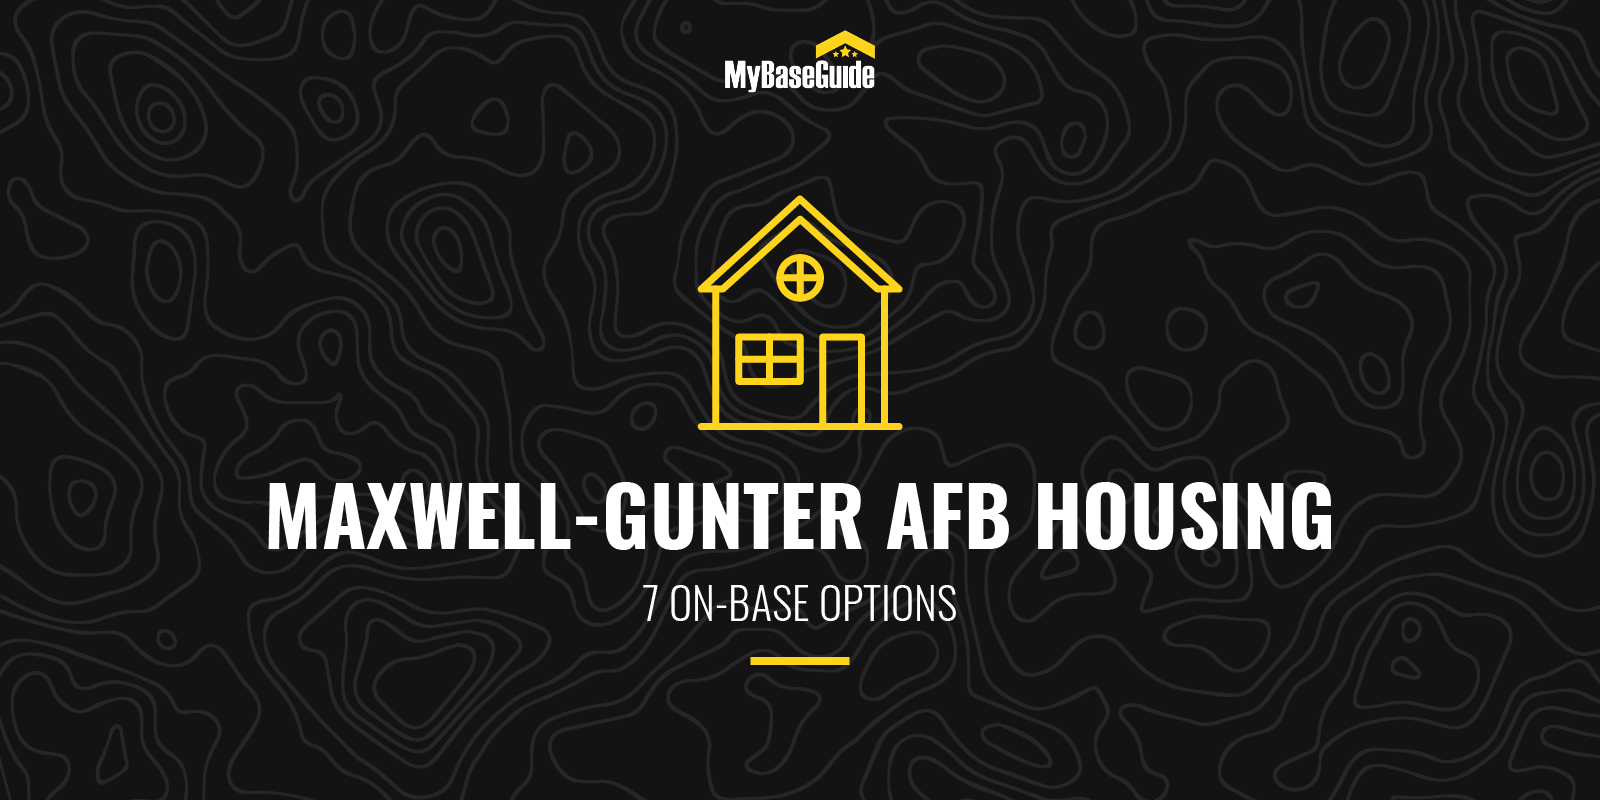 Maxwell-Gunter AFB Housing: 7 On-Base Options